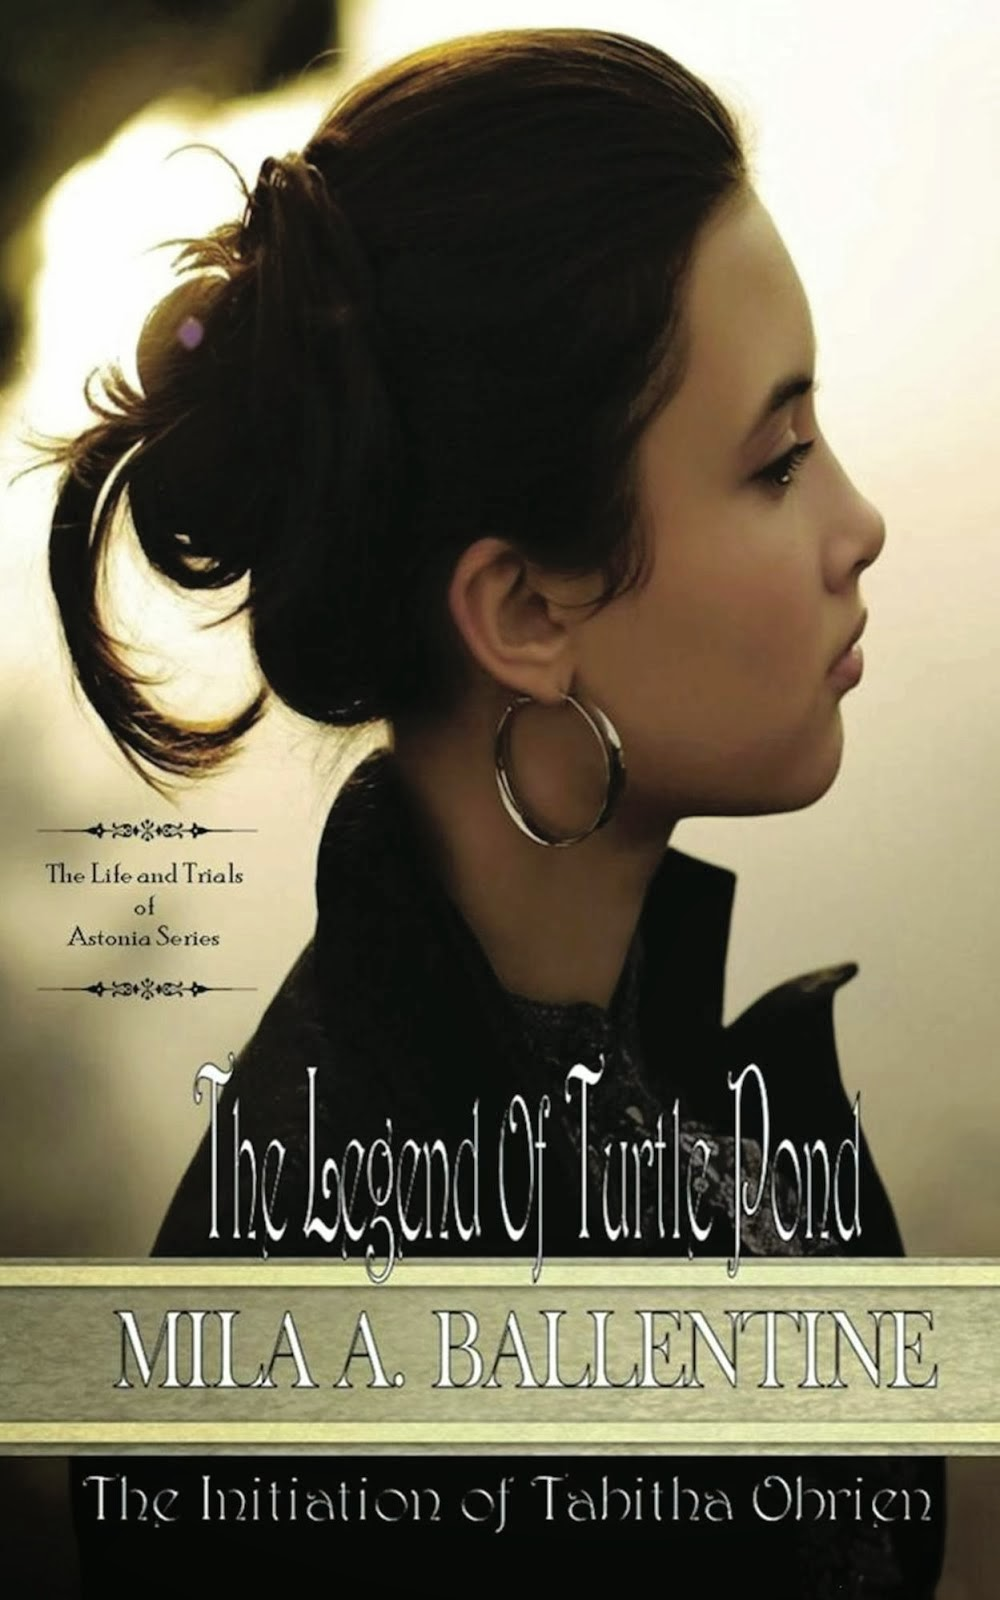 The Legend of Turtle Pond The Initiation of Tabitha Obrien (The Life and Trials of Astonia)